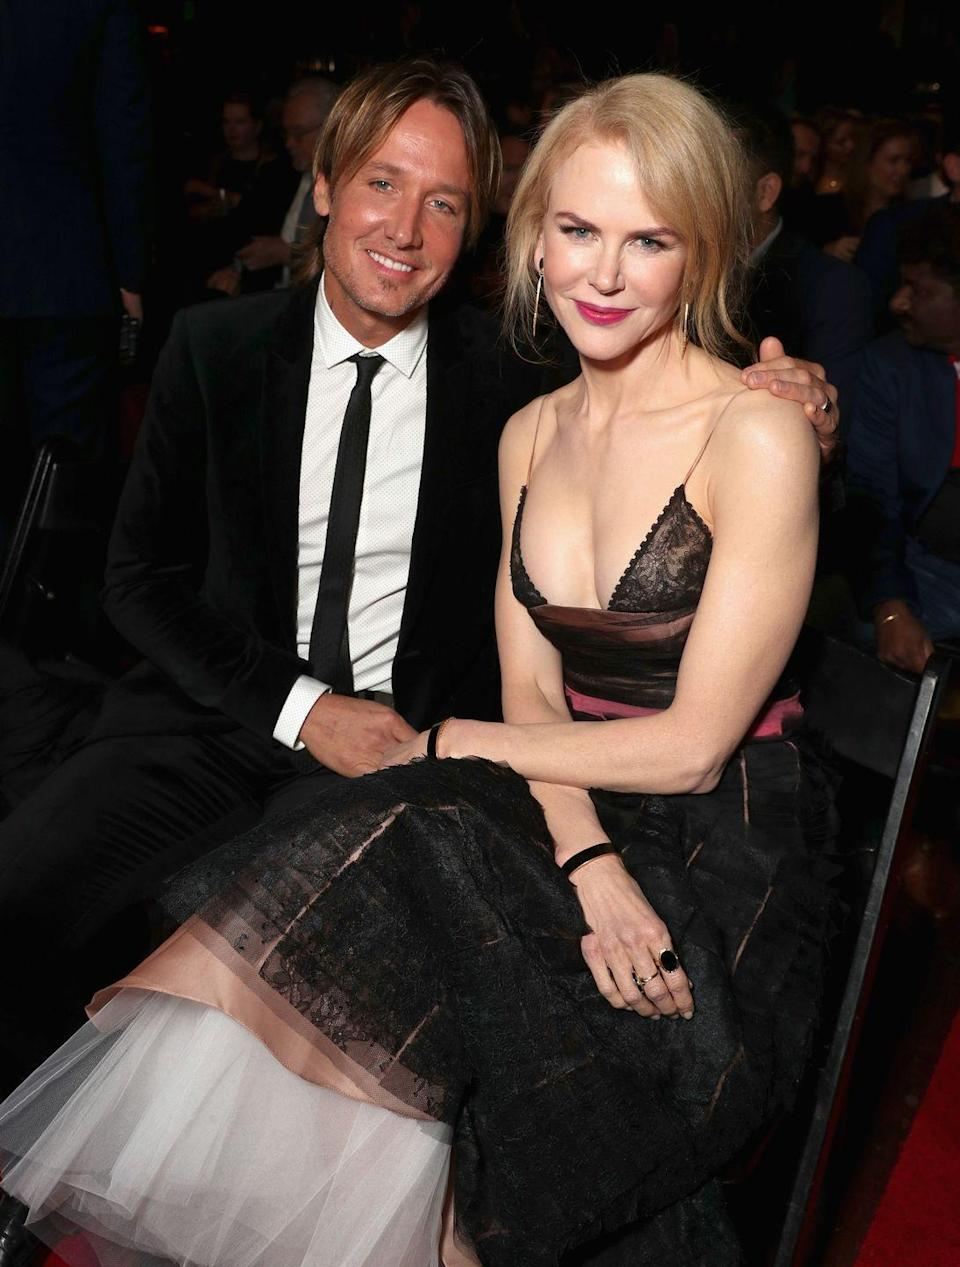 """<p>Nicole Kidman and Keith Urban <a href=""""http://people.com/celebrity/nicole-keith-say-i-do/"""" rel=""""nofollow noopener"""" target=""""_blank"""" data-ylk=""""slk:wed in June 2006"""" class=""""link rapid-noclick-resp"""">wed in June 2006</a> in a candle-lit ceremony at Sydney, Australia's Cardinal Cerretti Memorial Chapel. Kidman wore a Balenciaga gown, and guests included Naomi Watts and Hugh Jackman. </p>"""